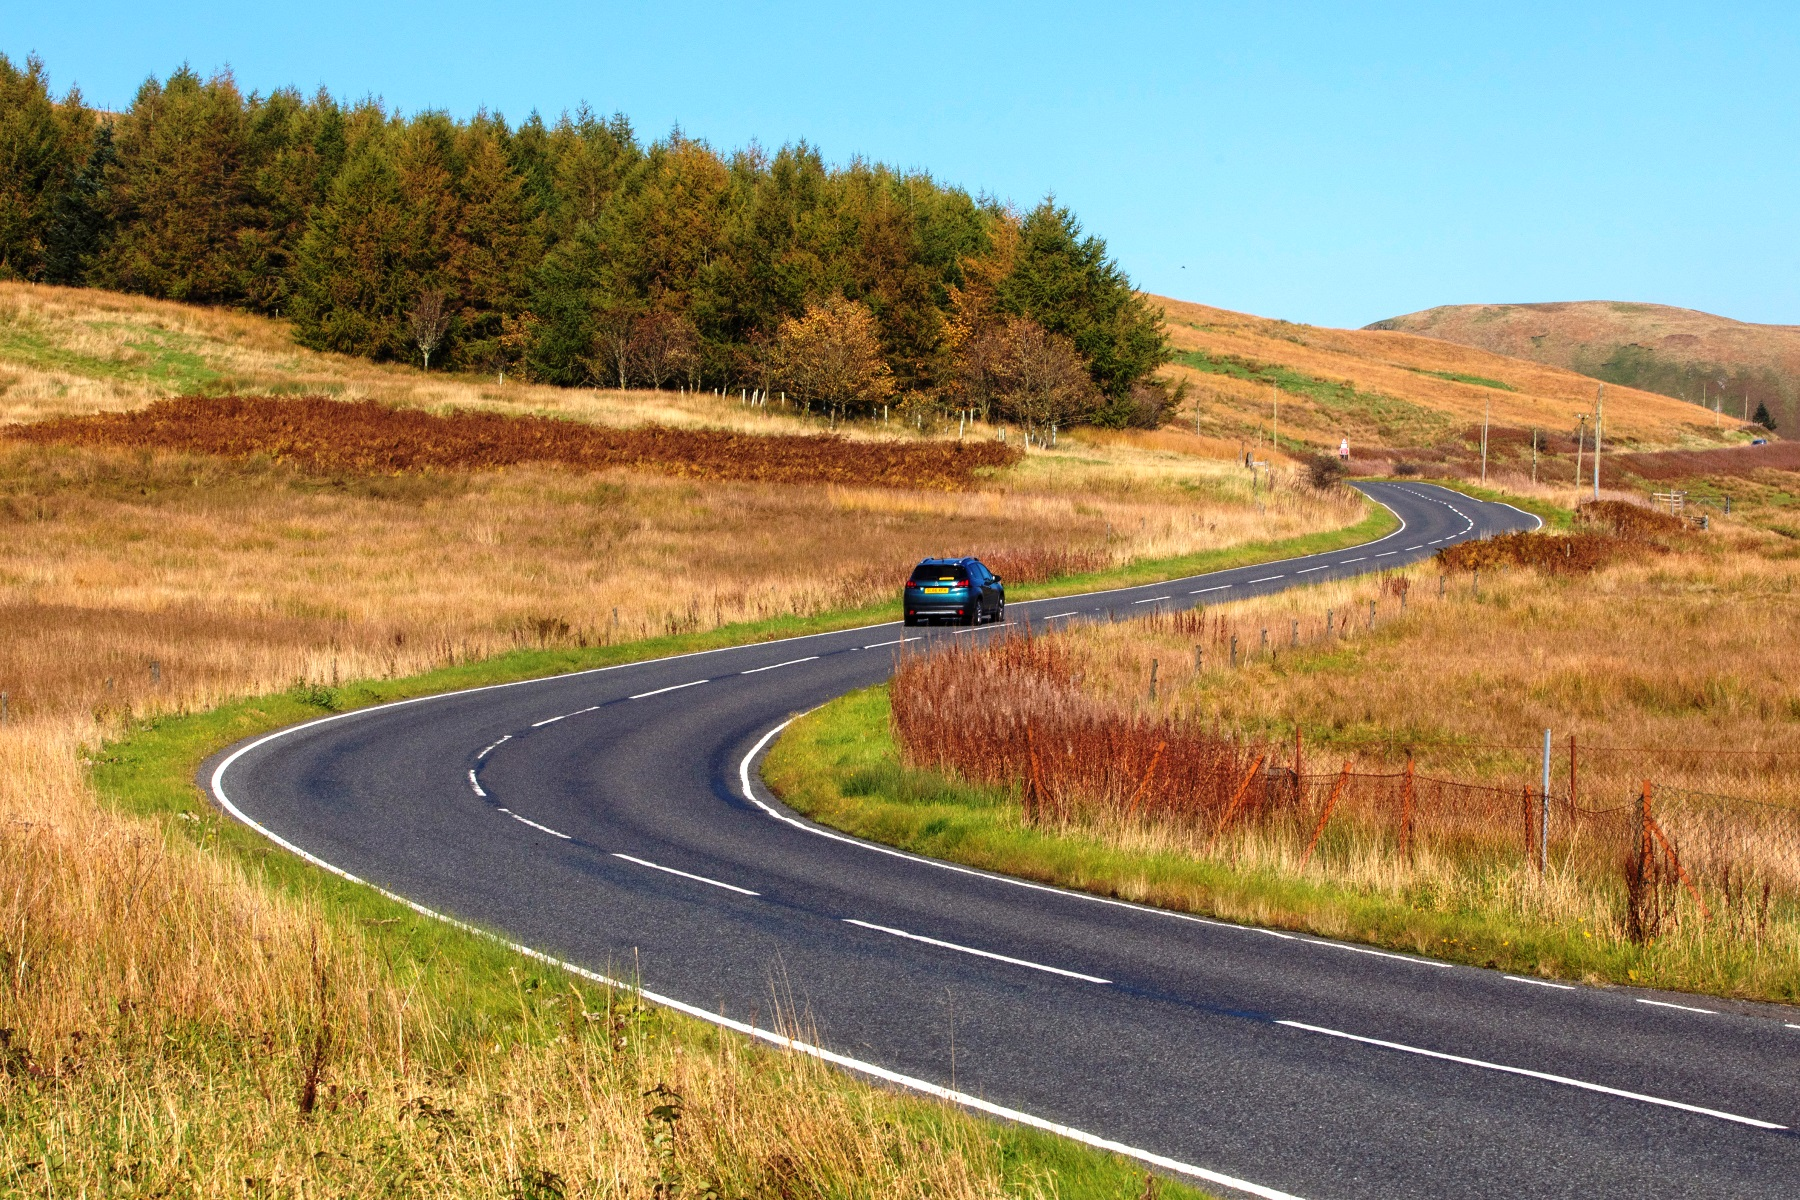 The A701 from Moffat to Edinburgh in the Scottish Borders, which is one of the UKs best driving roads